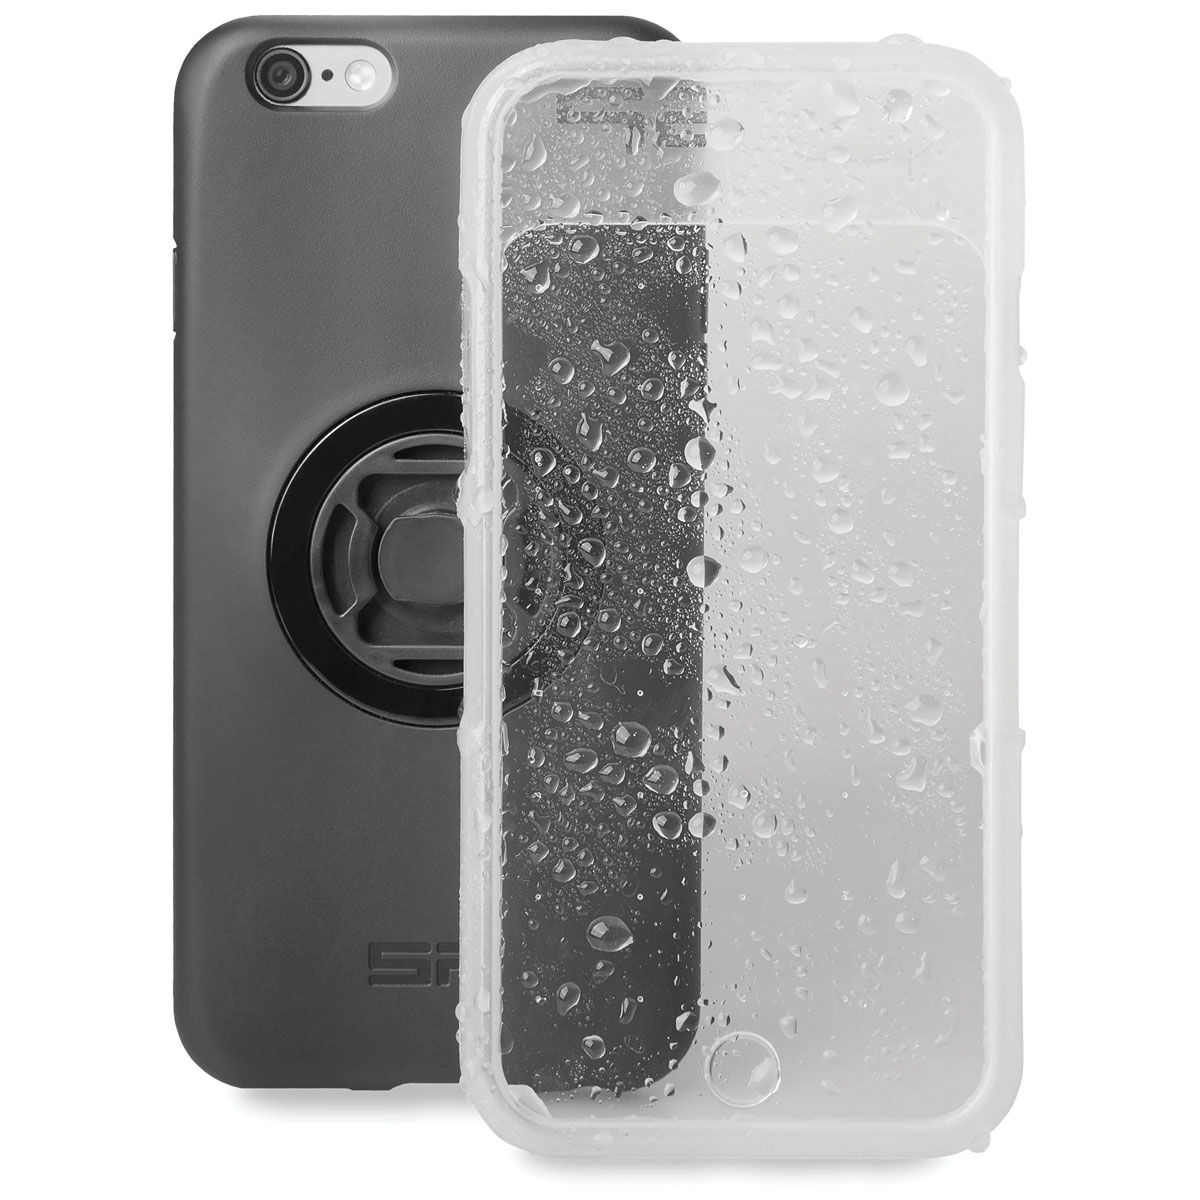 SP Connect Weather Cover for iPhone 6/6S/7/8